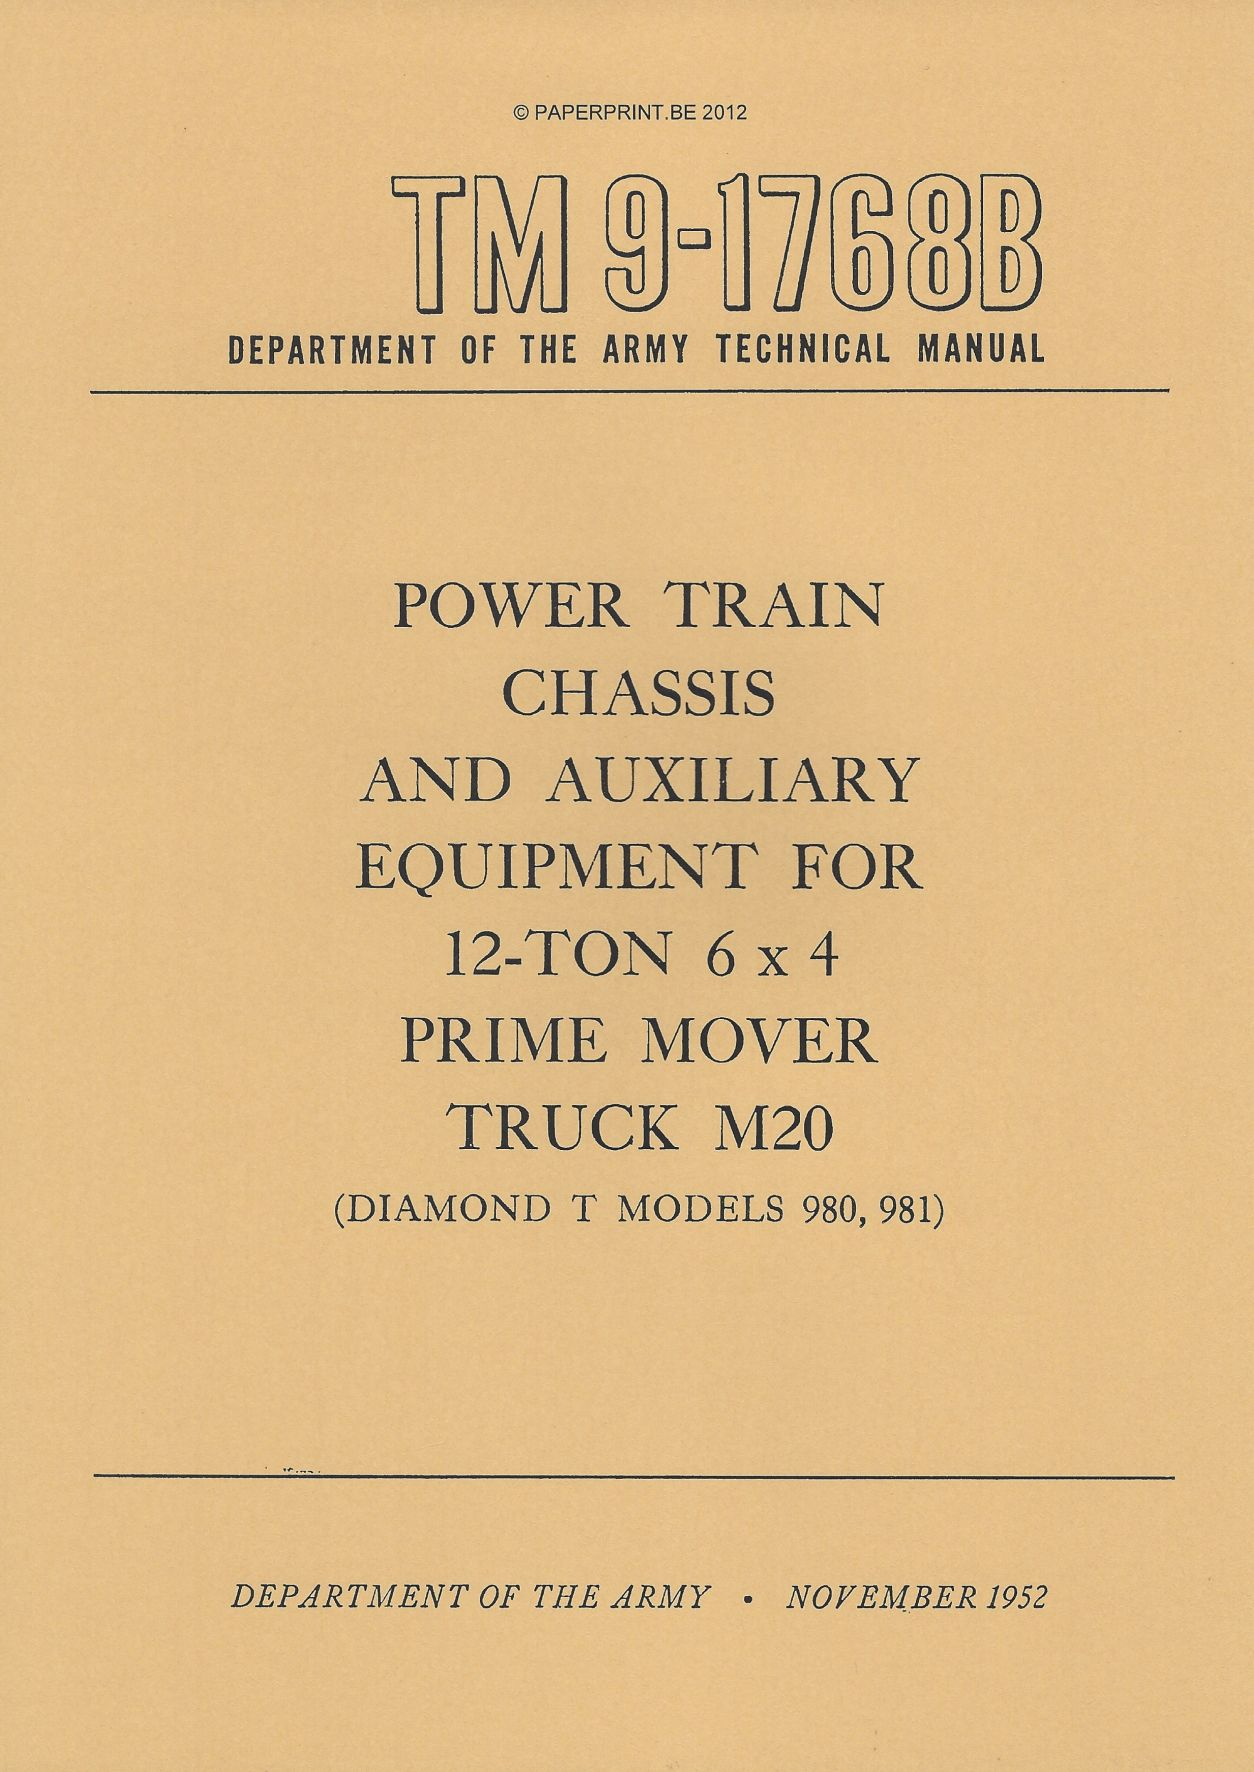 TM 9-1768B US POWER TRAIN, CHASSIS AND AUXILIARY  EQUIPMENT FOR 12-TON 6x4 PRIME MOVER TRUCK M20  (DIAMOND T MODELS 980, 981)